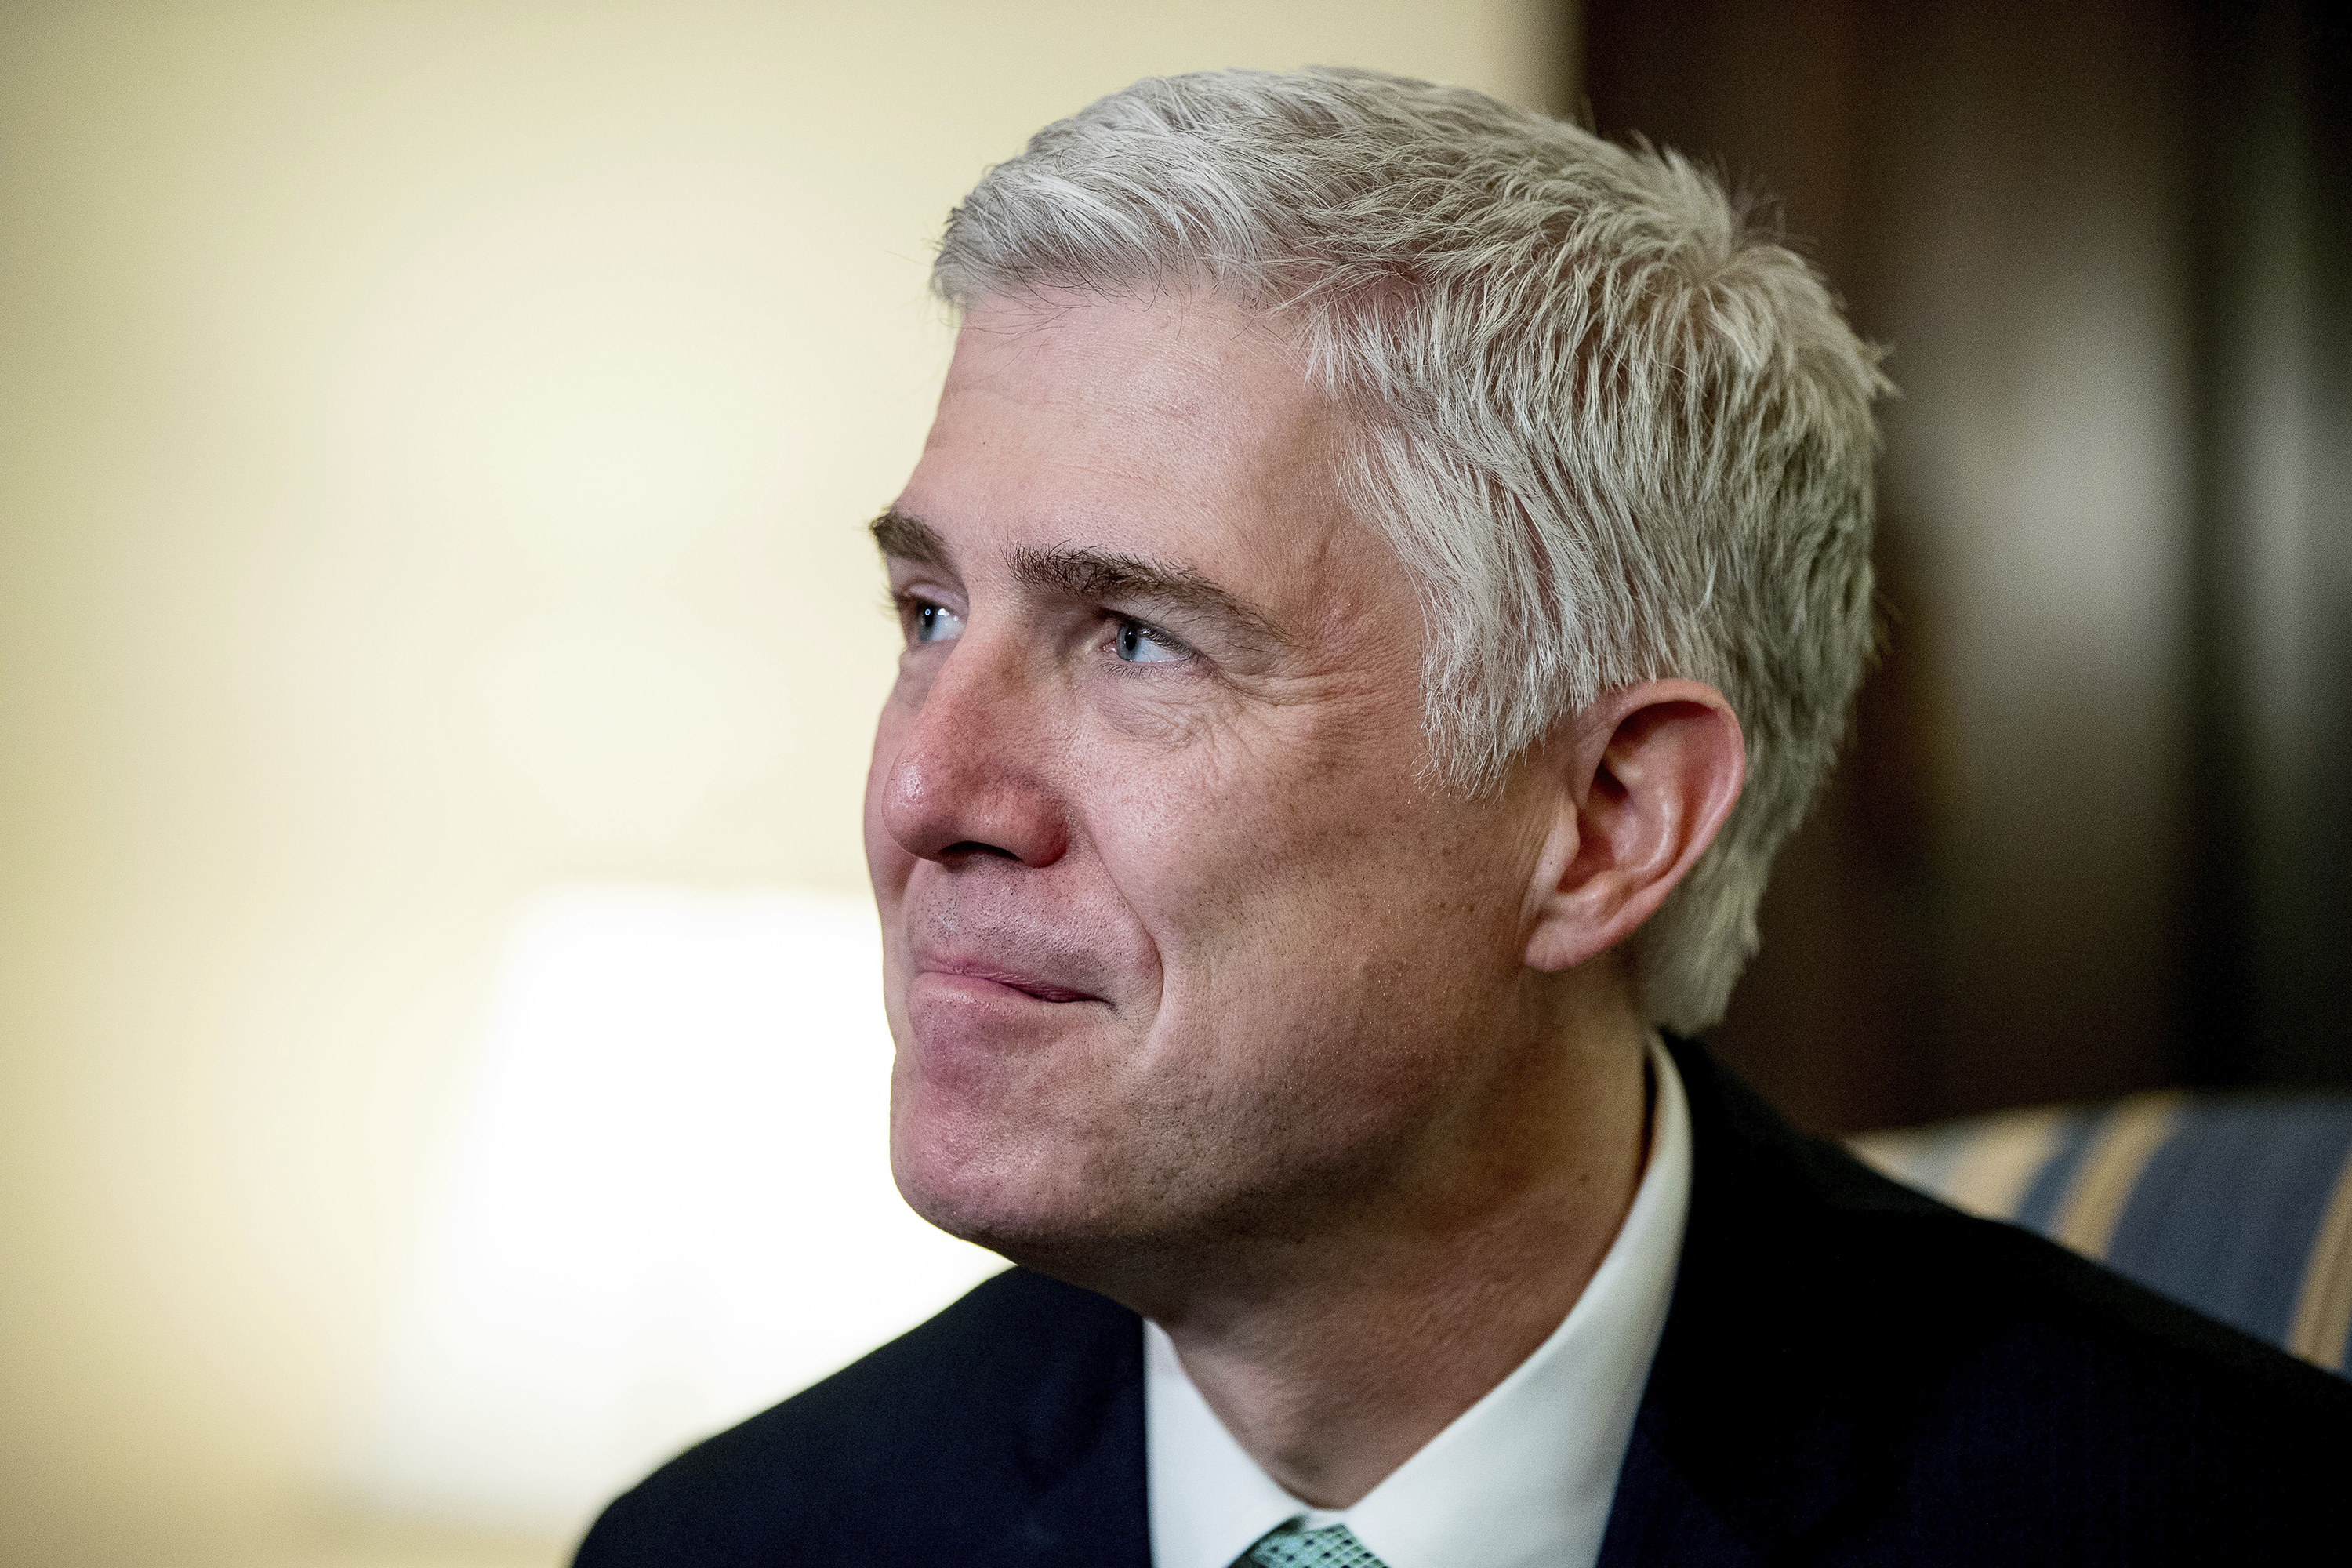 Photo: Neil Gosuch Nominated To U.S. Supreme Court (AP)